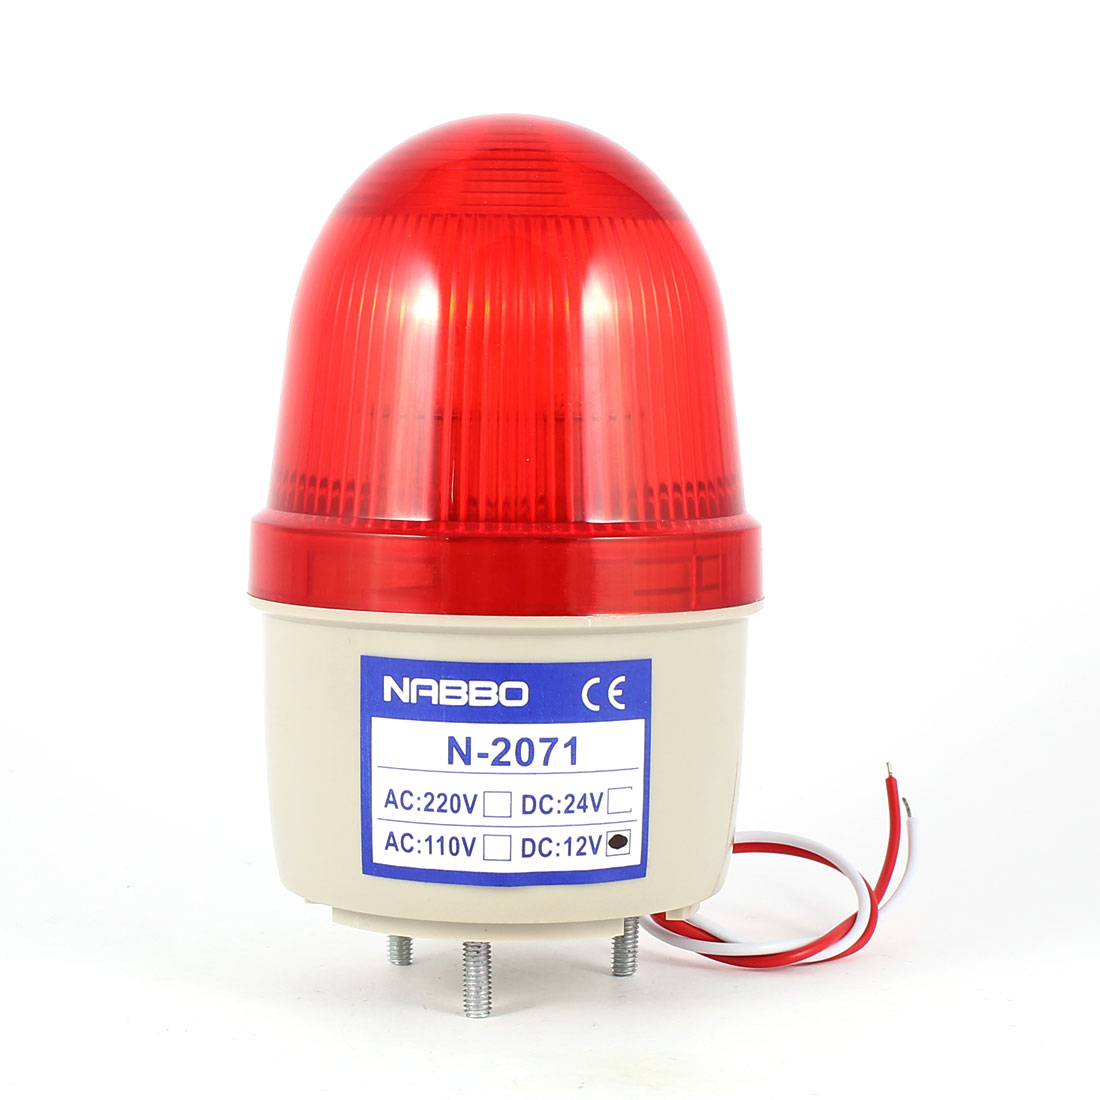 Industrial DC 12V Mini Red LED Flash Warning Light Bulb Signal Tower Lamp N-2071